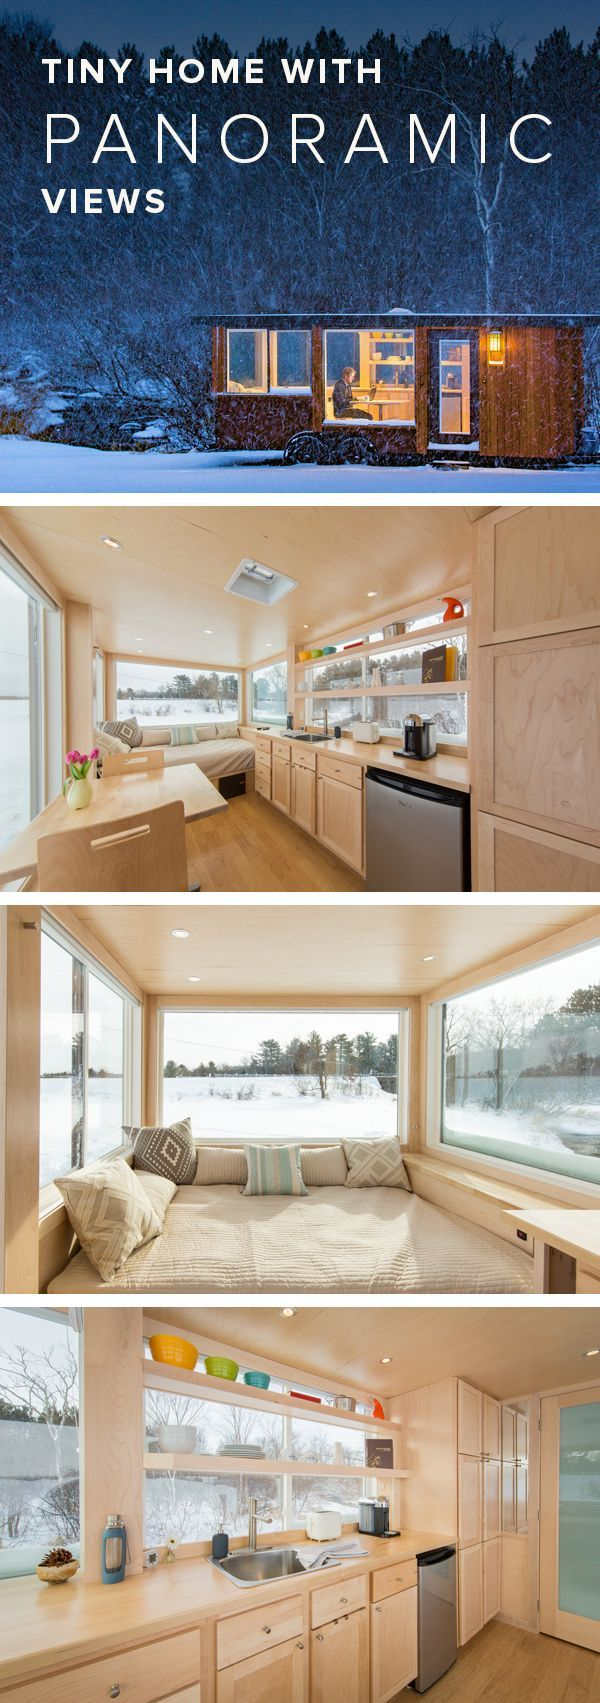 Small home big views See inside this